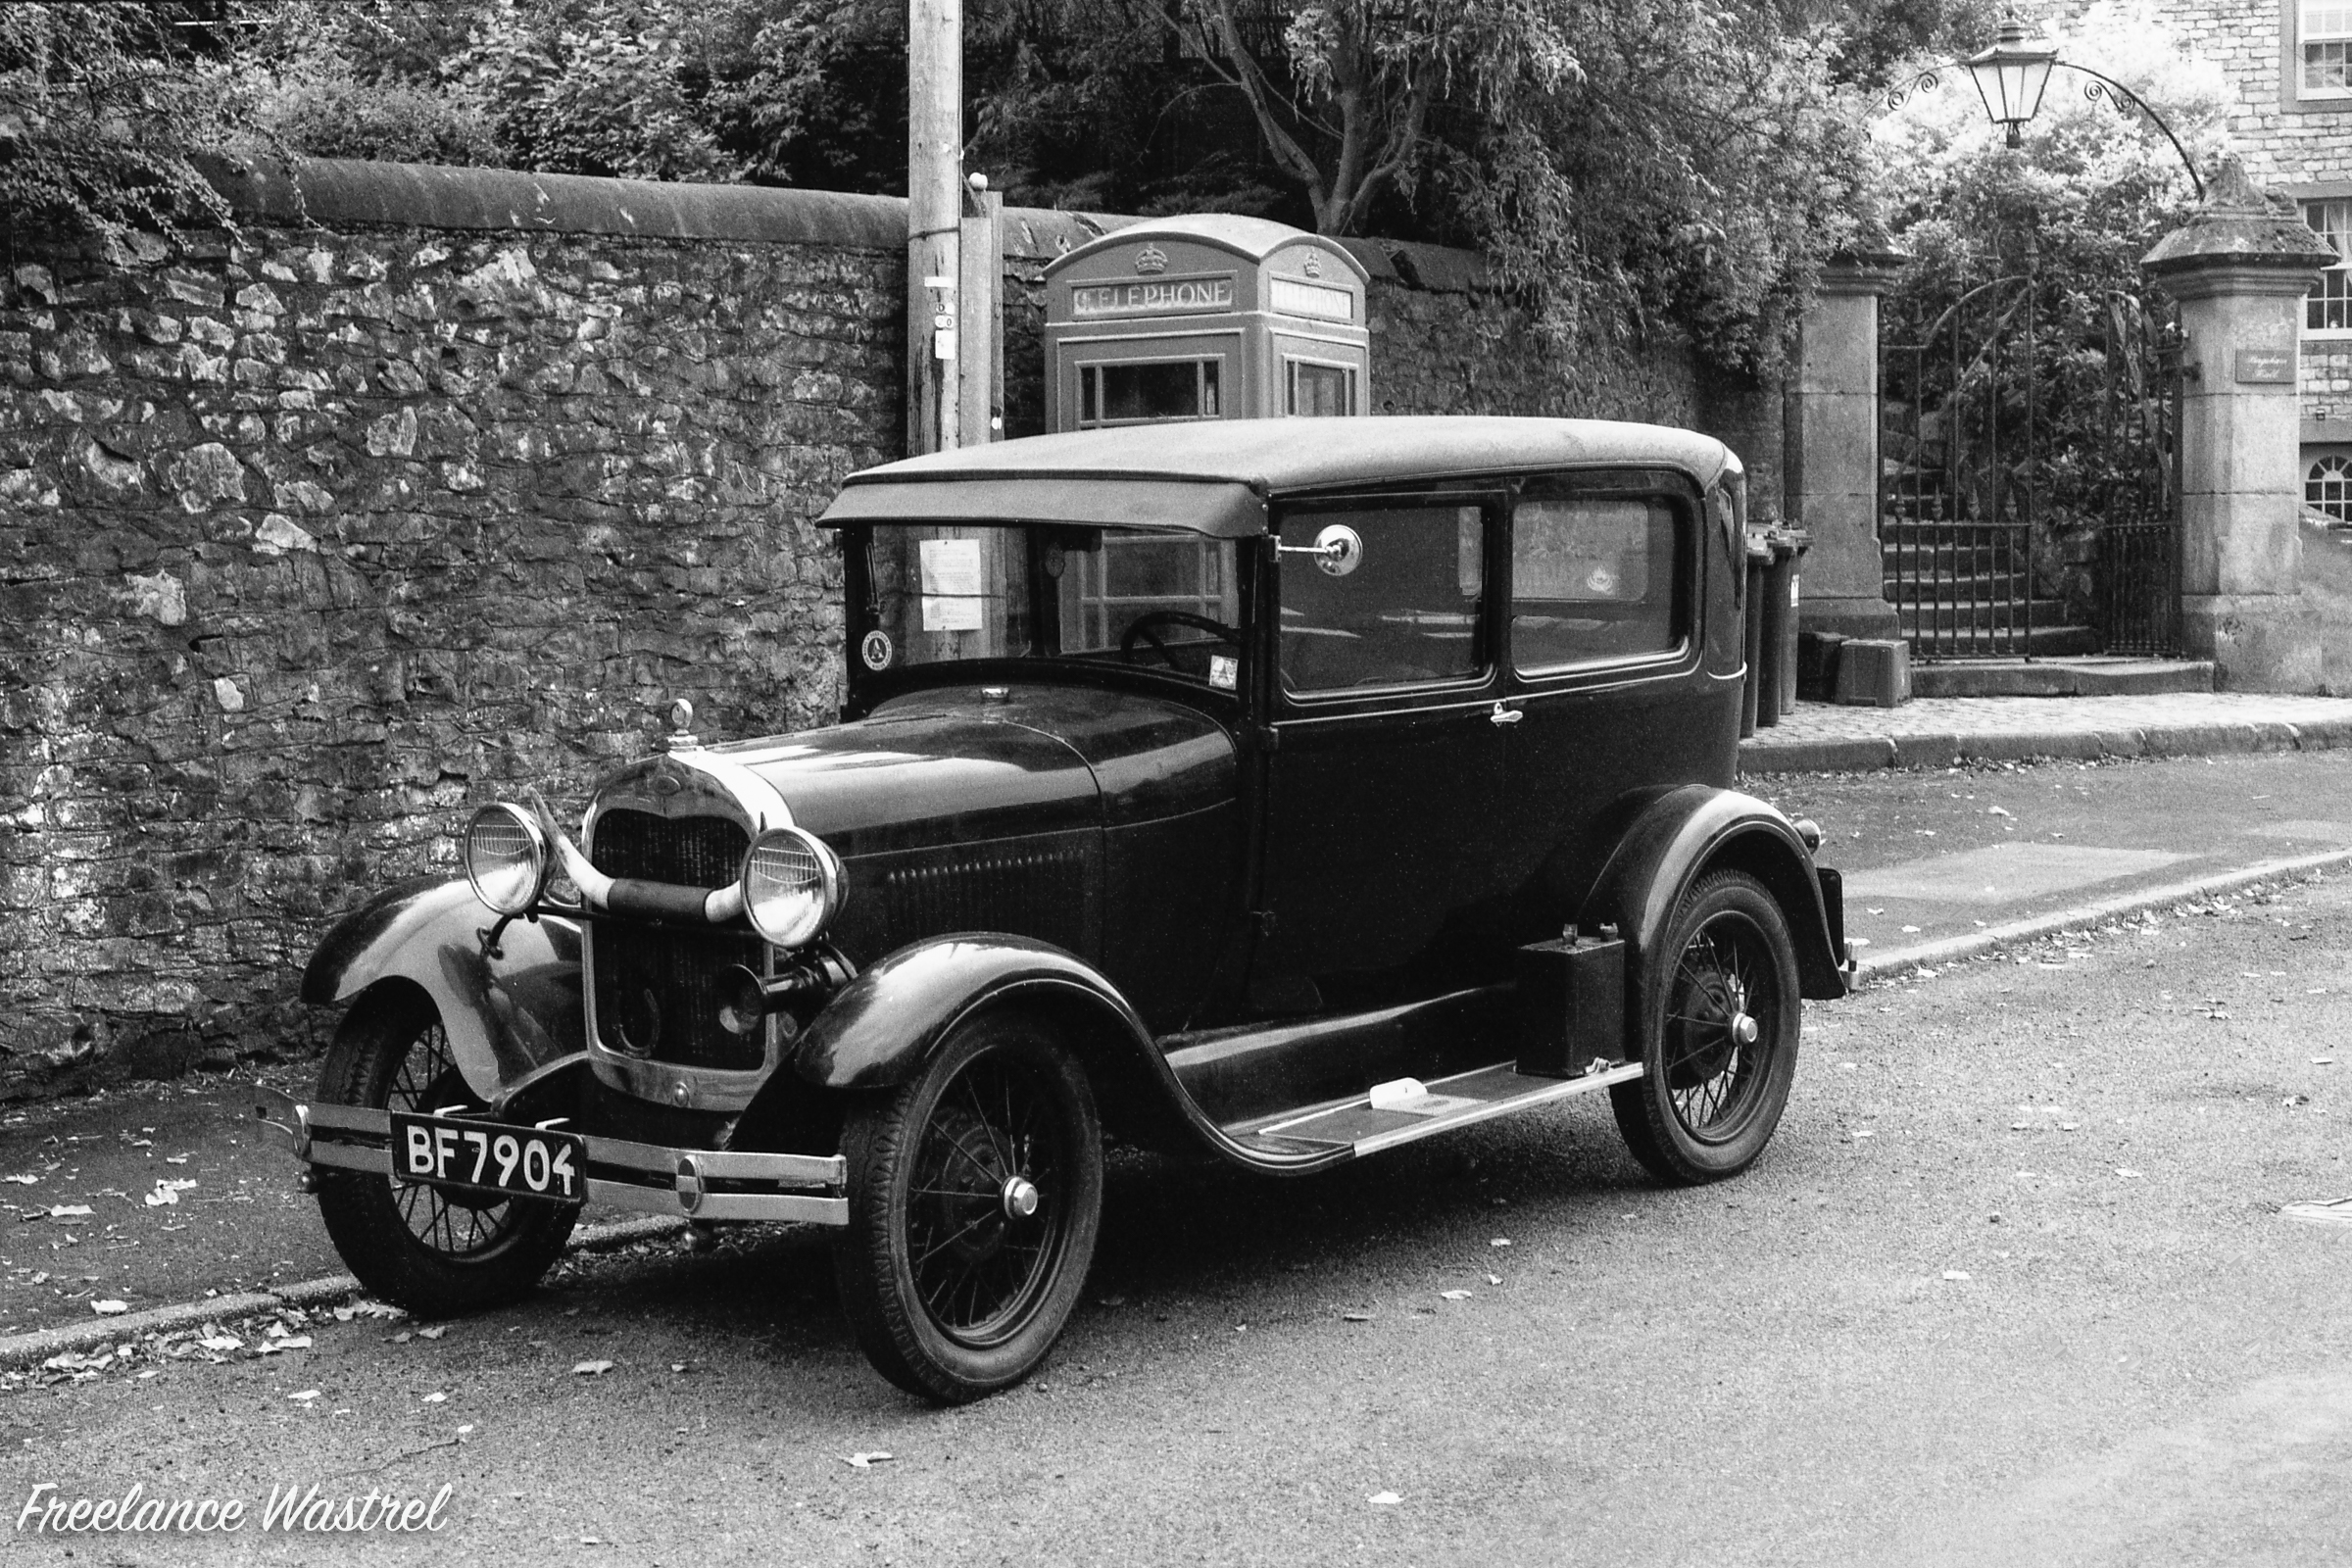 1929 Ford Model A, Tideswell, October 2018